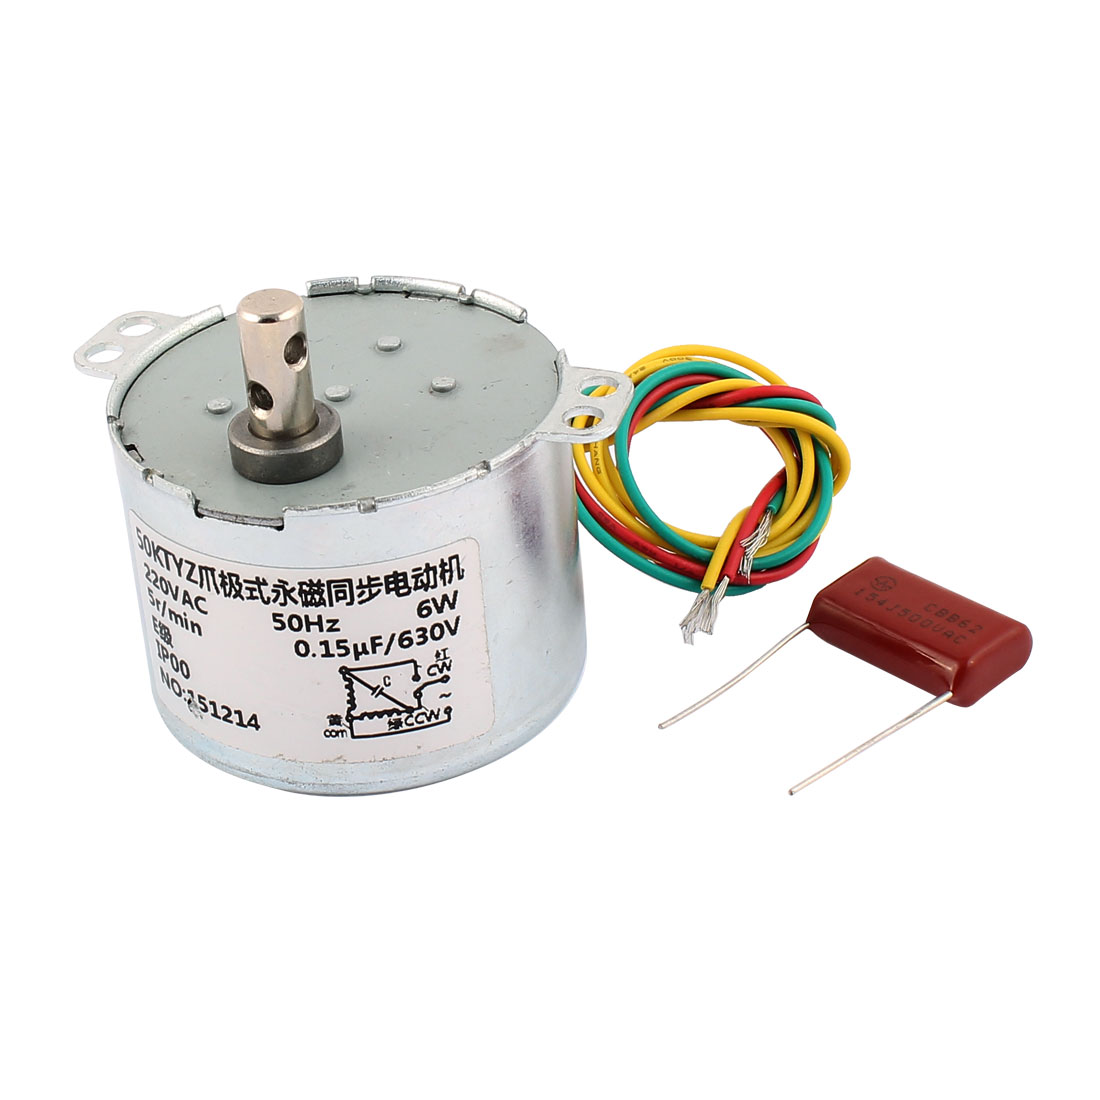 AC 220V 5RPM 50HZ Frequency Permanent Magnet Synchronous Motor Gear Box Motor